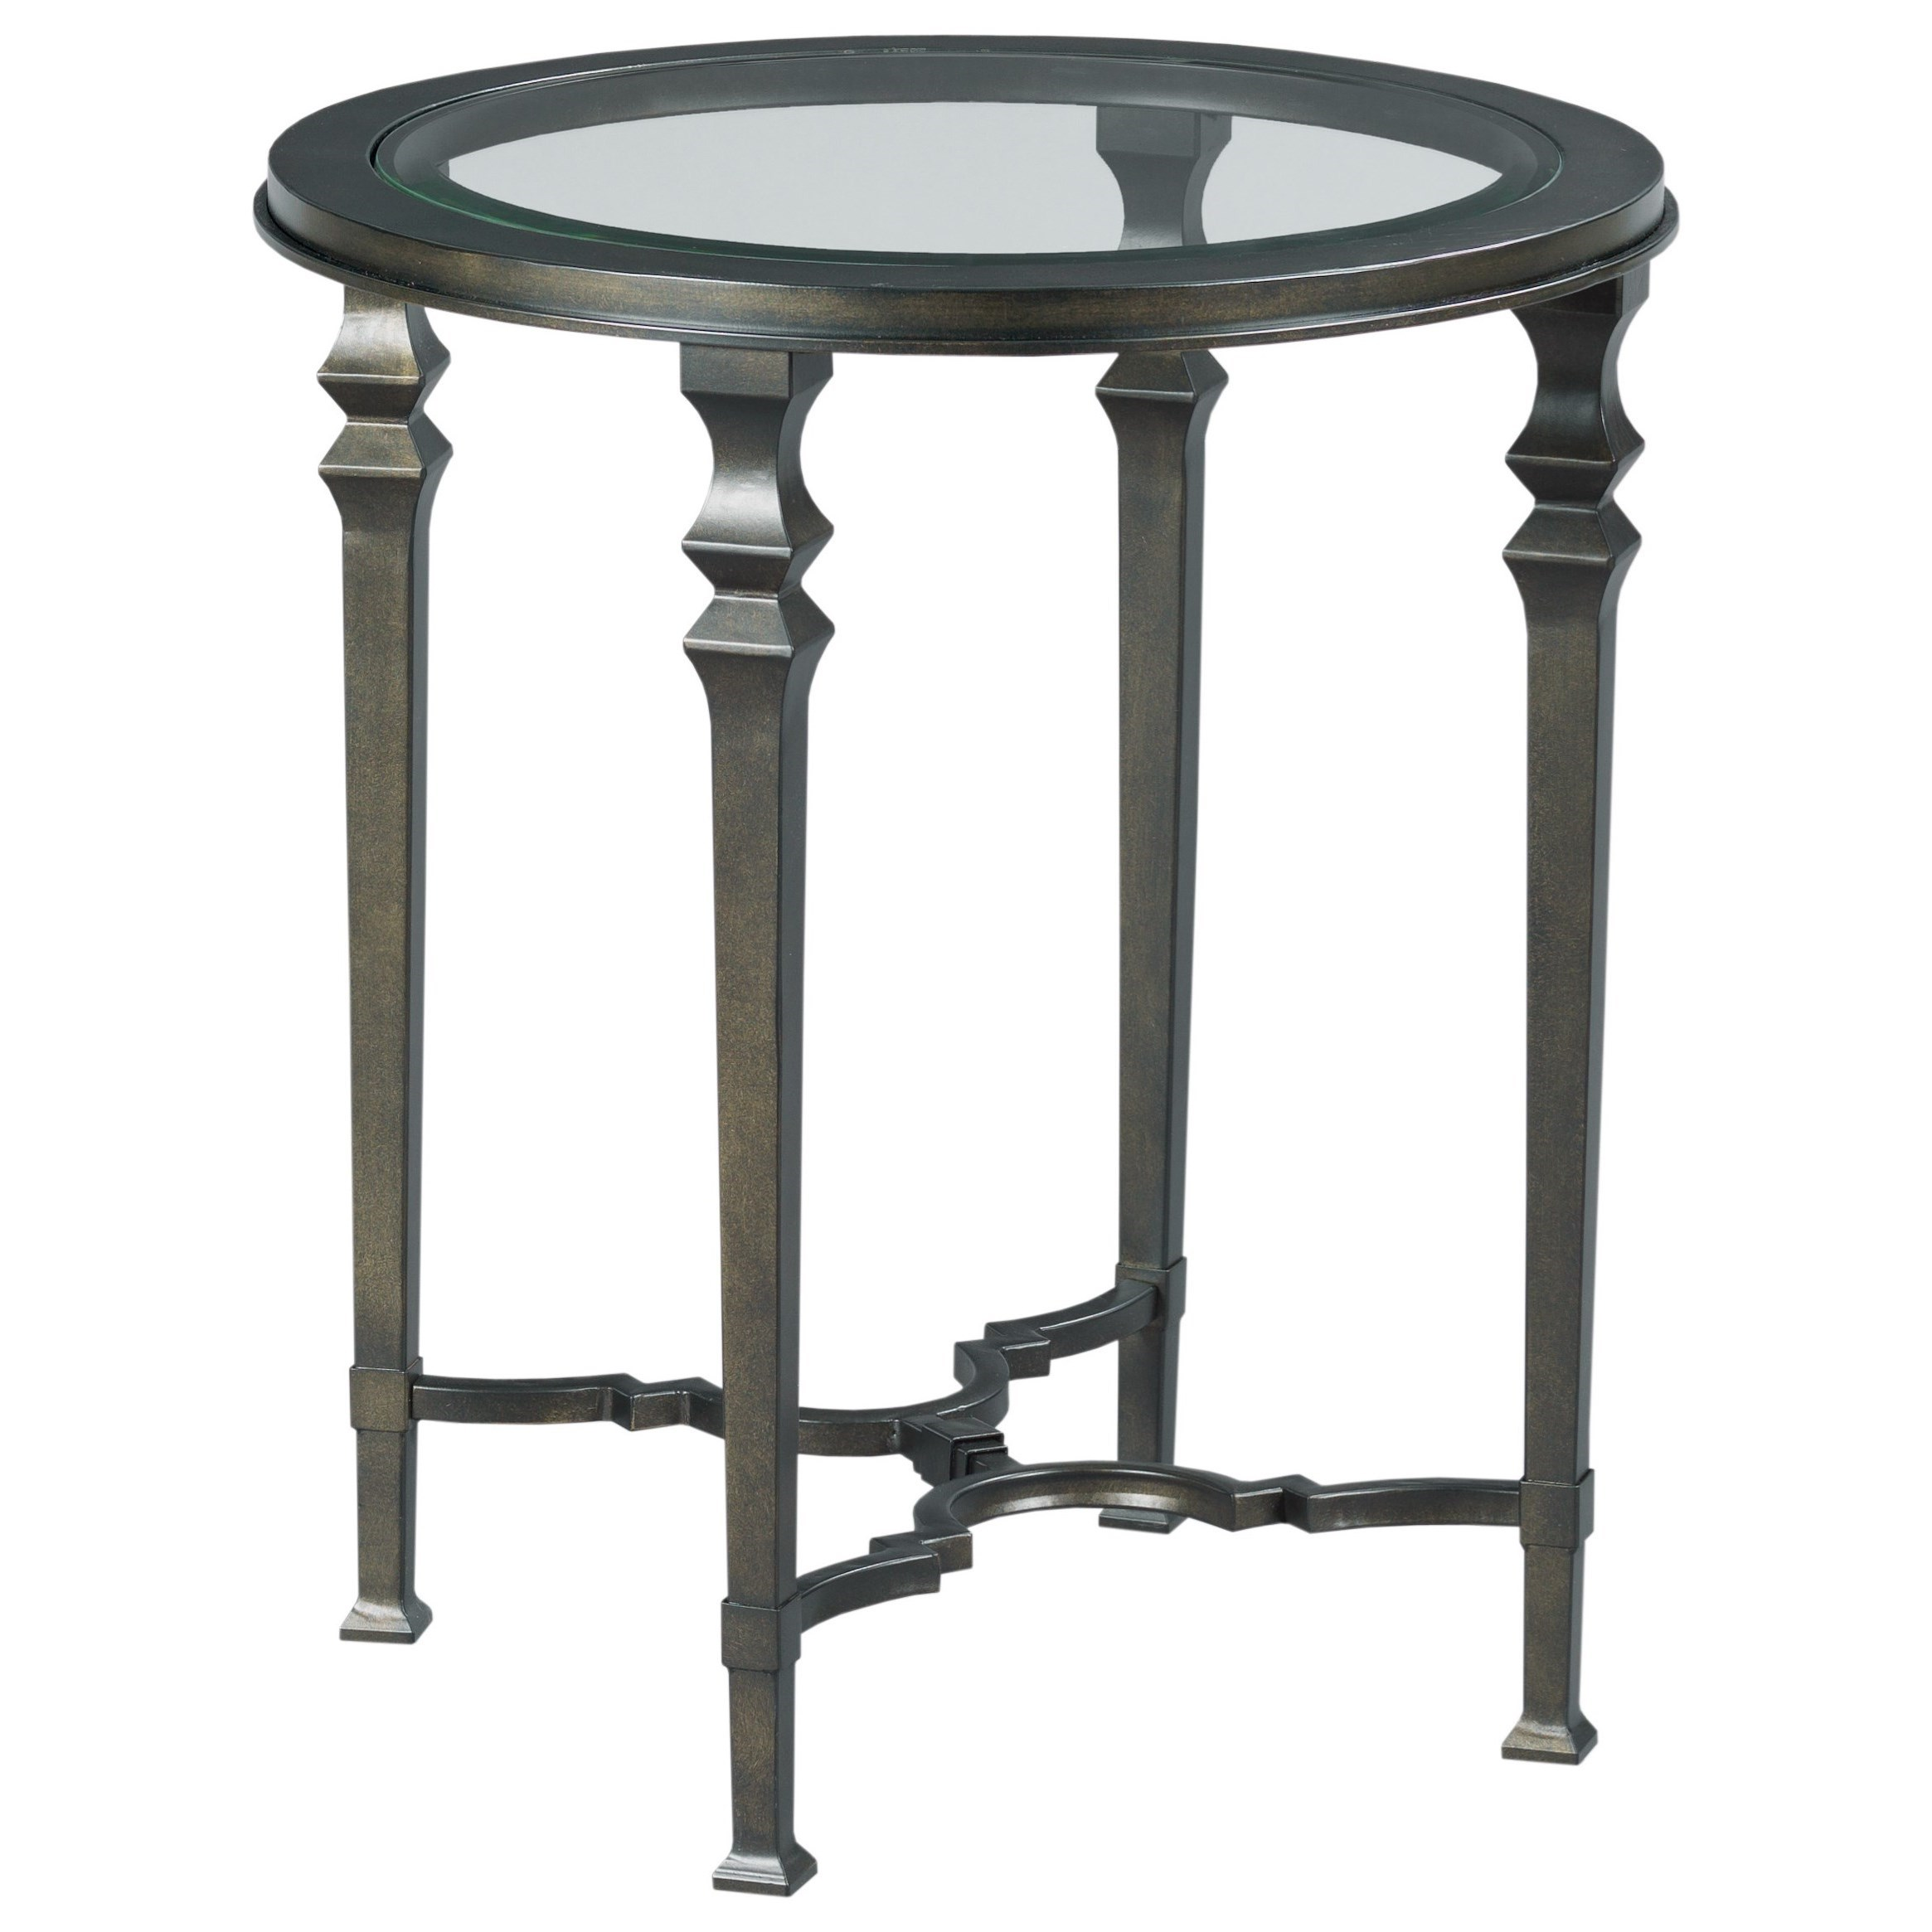 Paragon Round End Table by Alexvale at Northeast Factory Direct